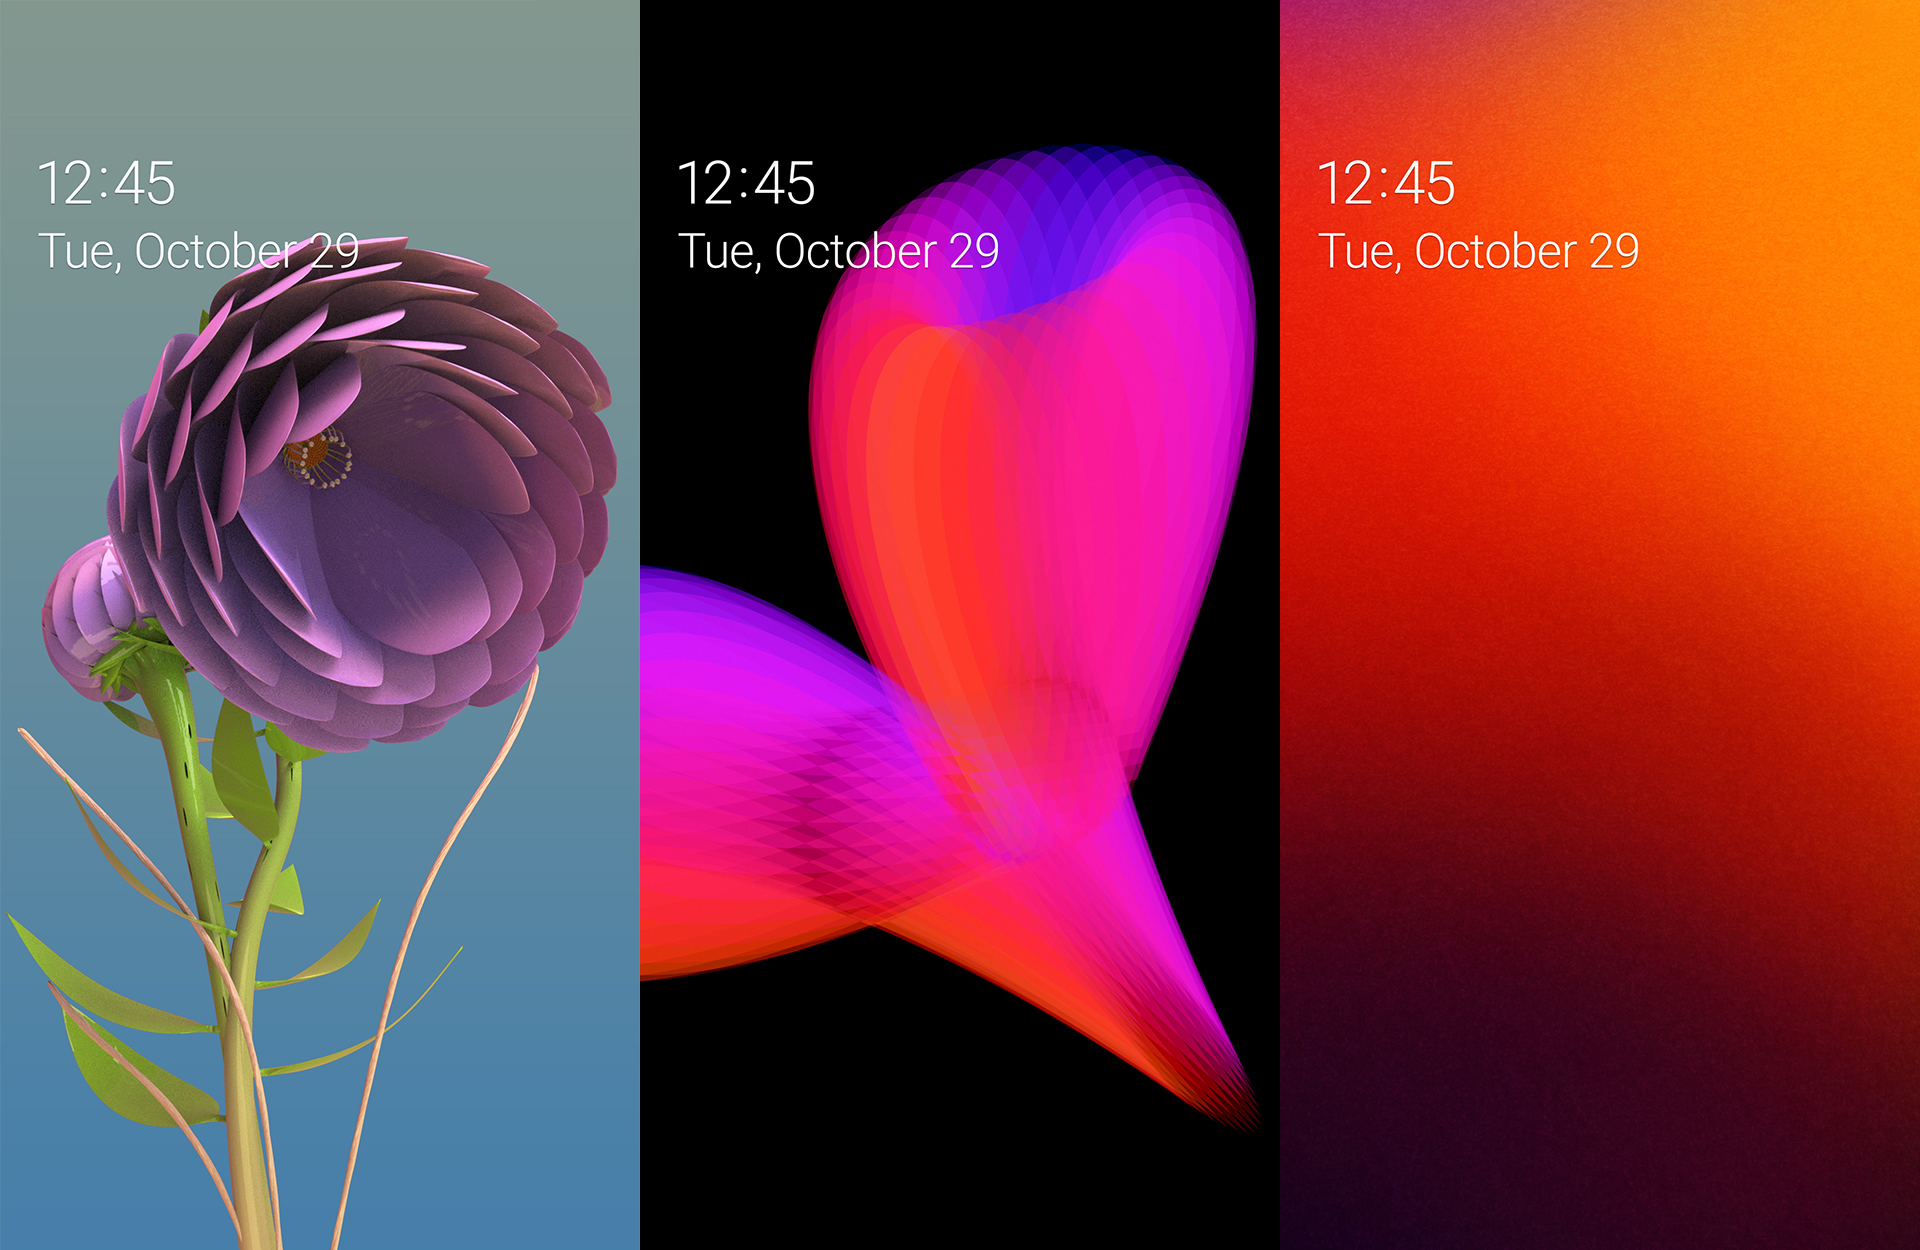 Top Three Wallpaper Designs In The Samsung Mobile Design Competition